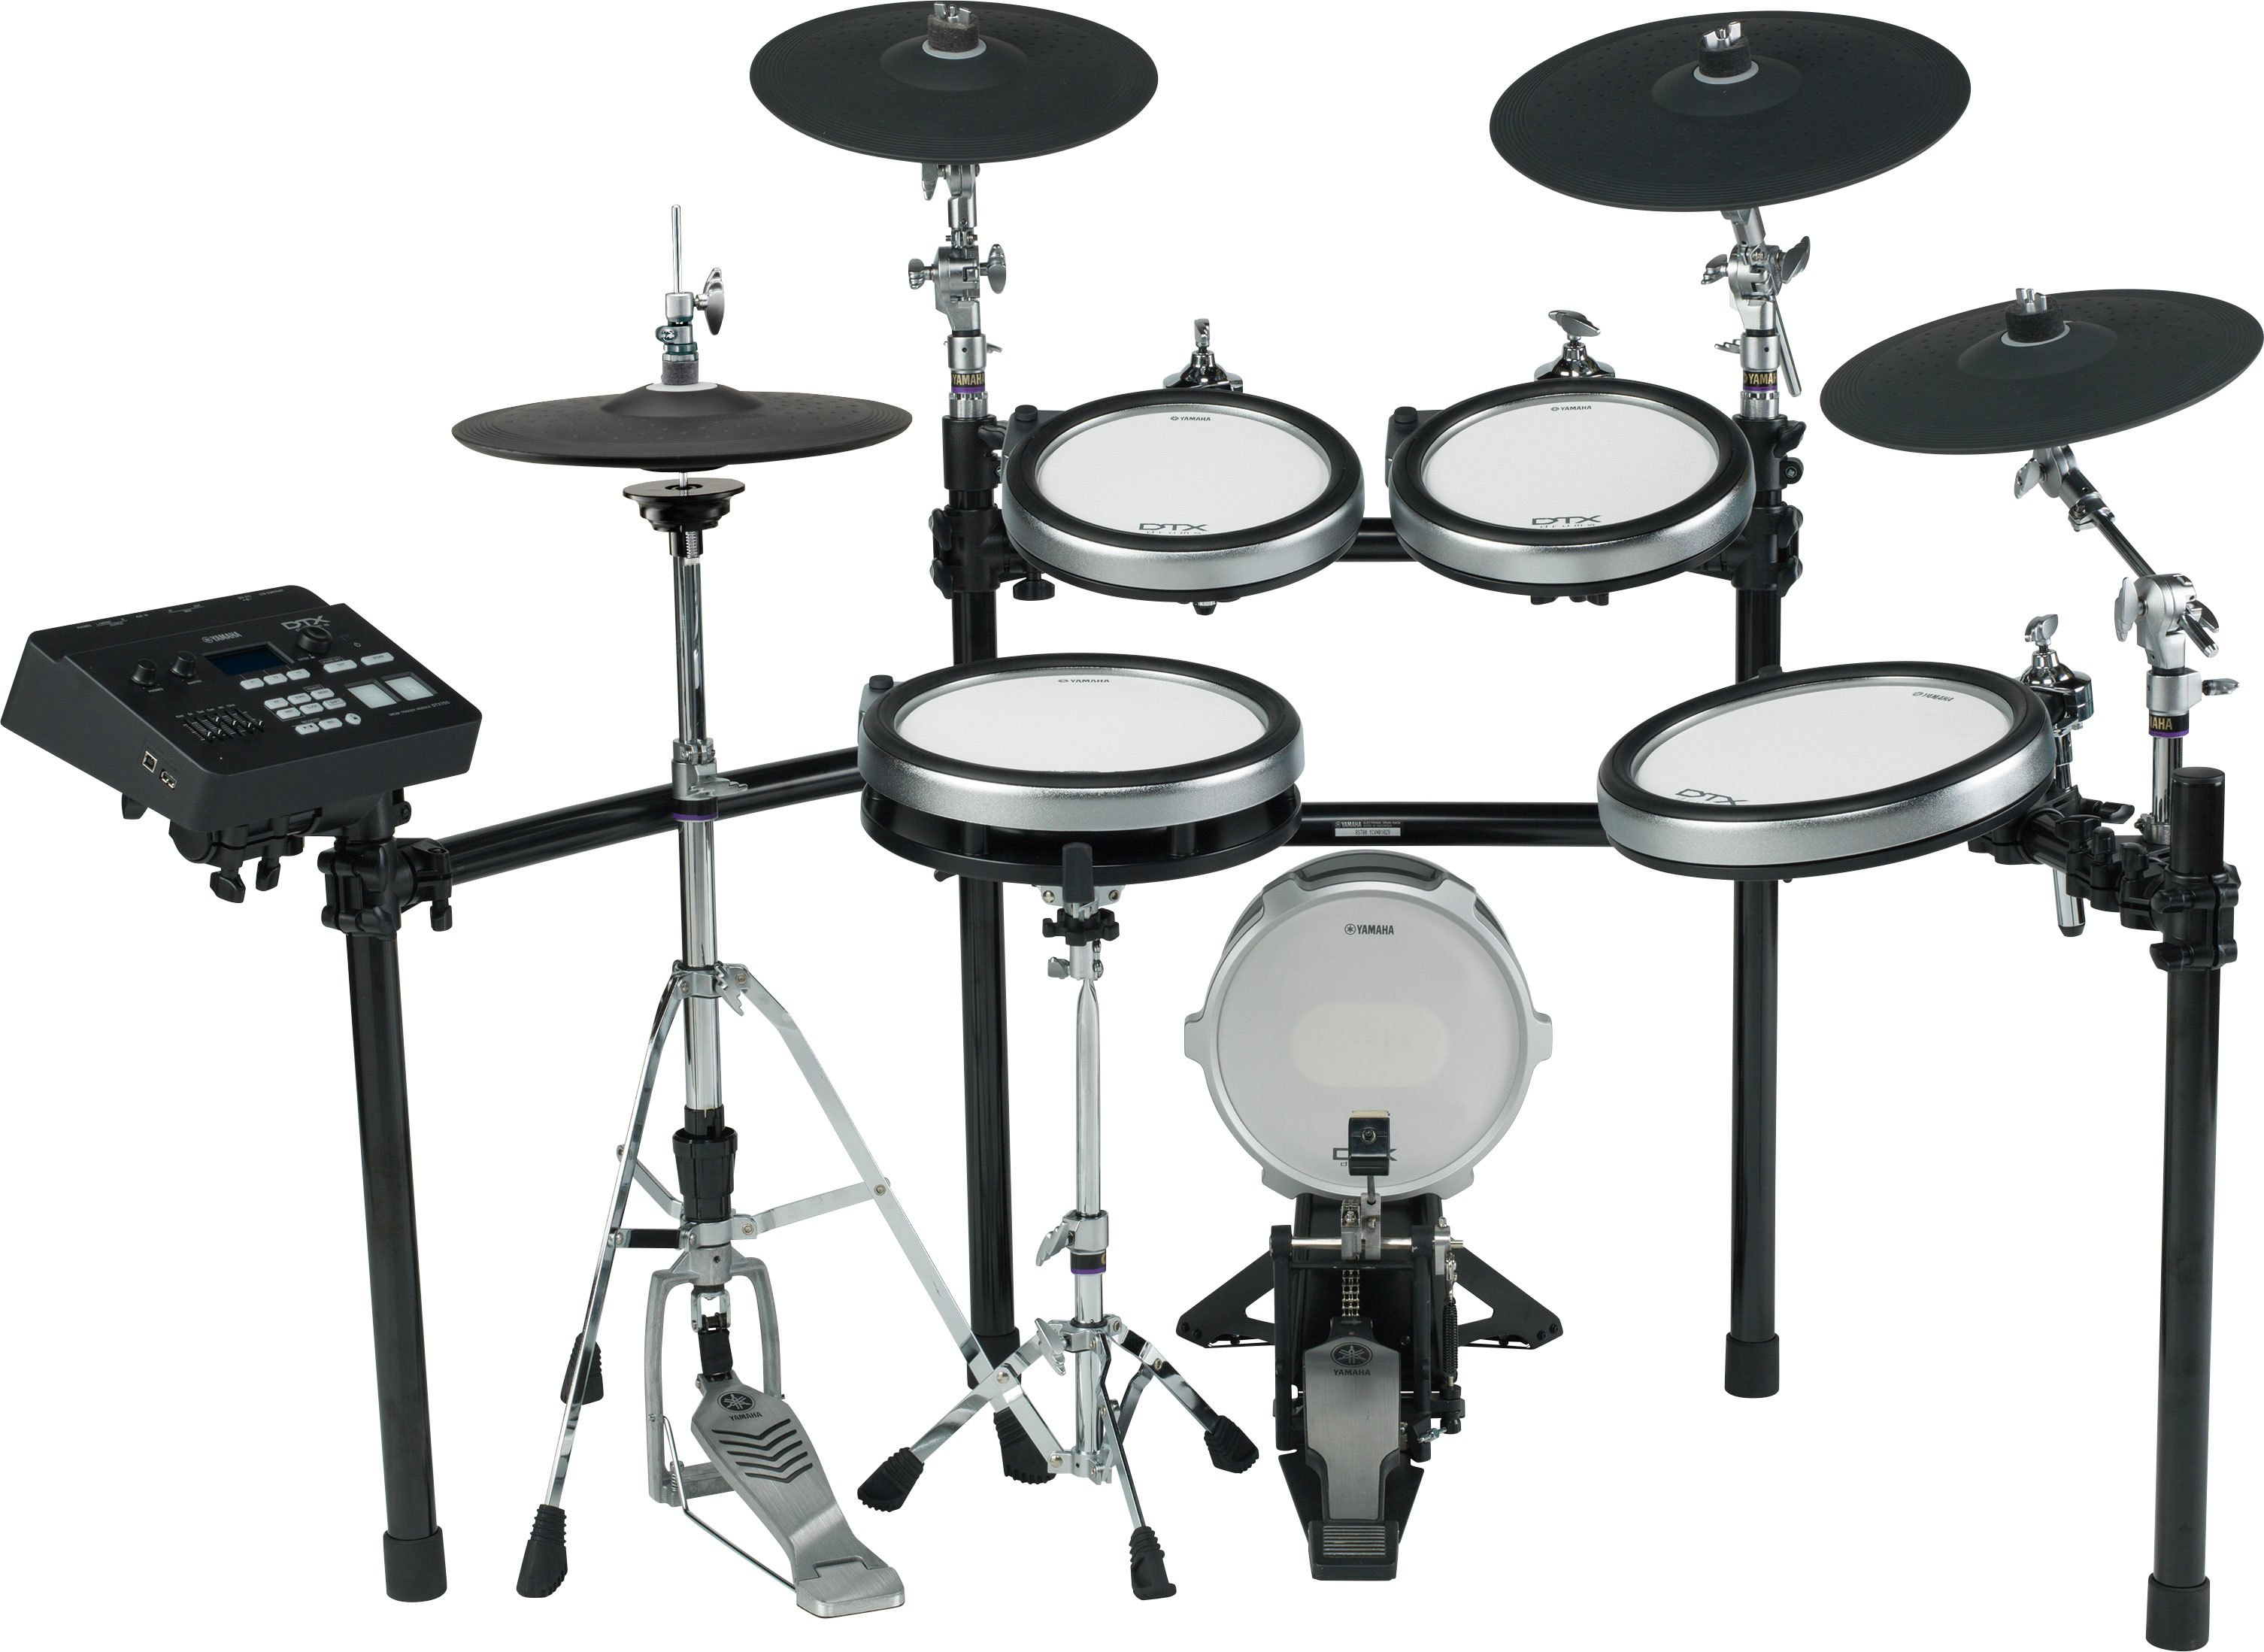 DTX700 Series  Overview  Electronic Drum Kits